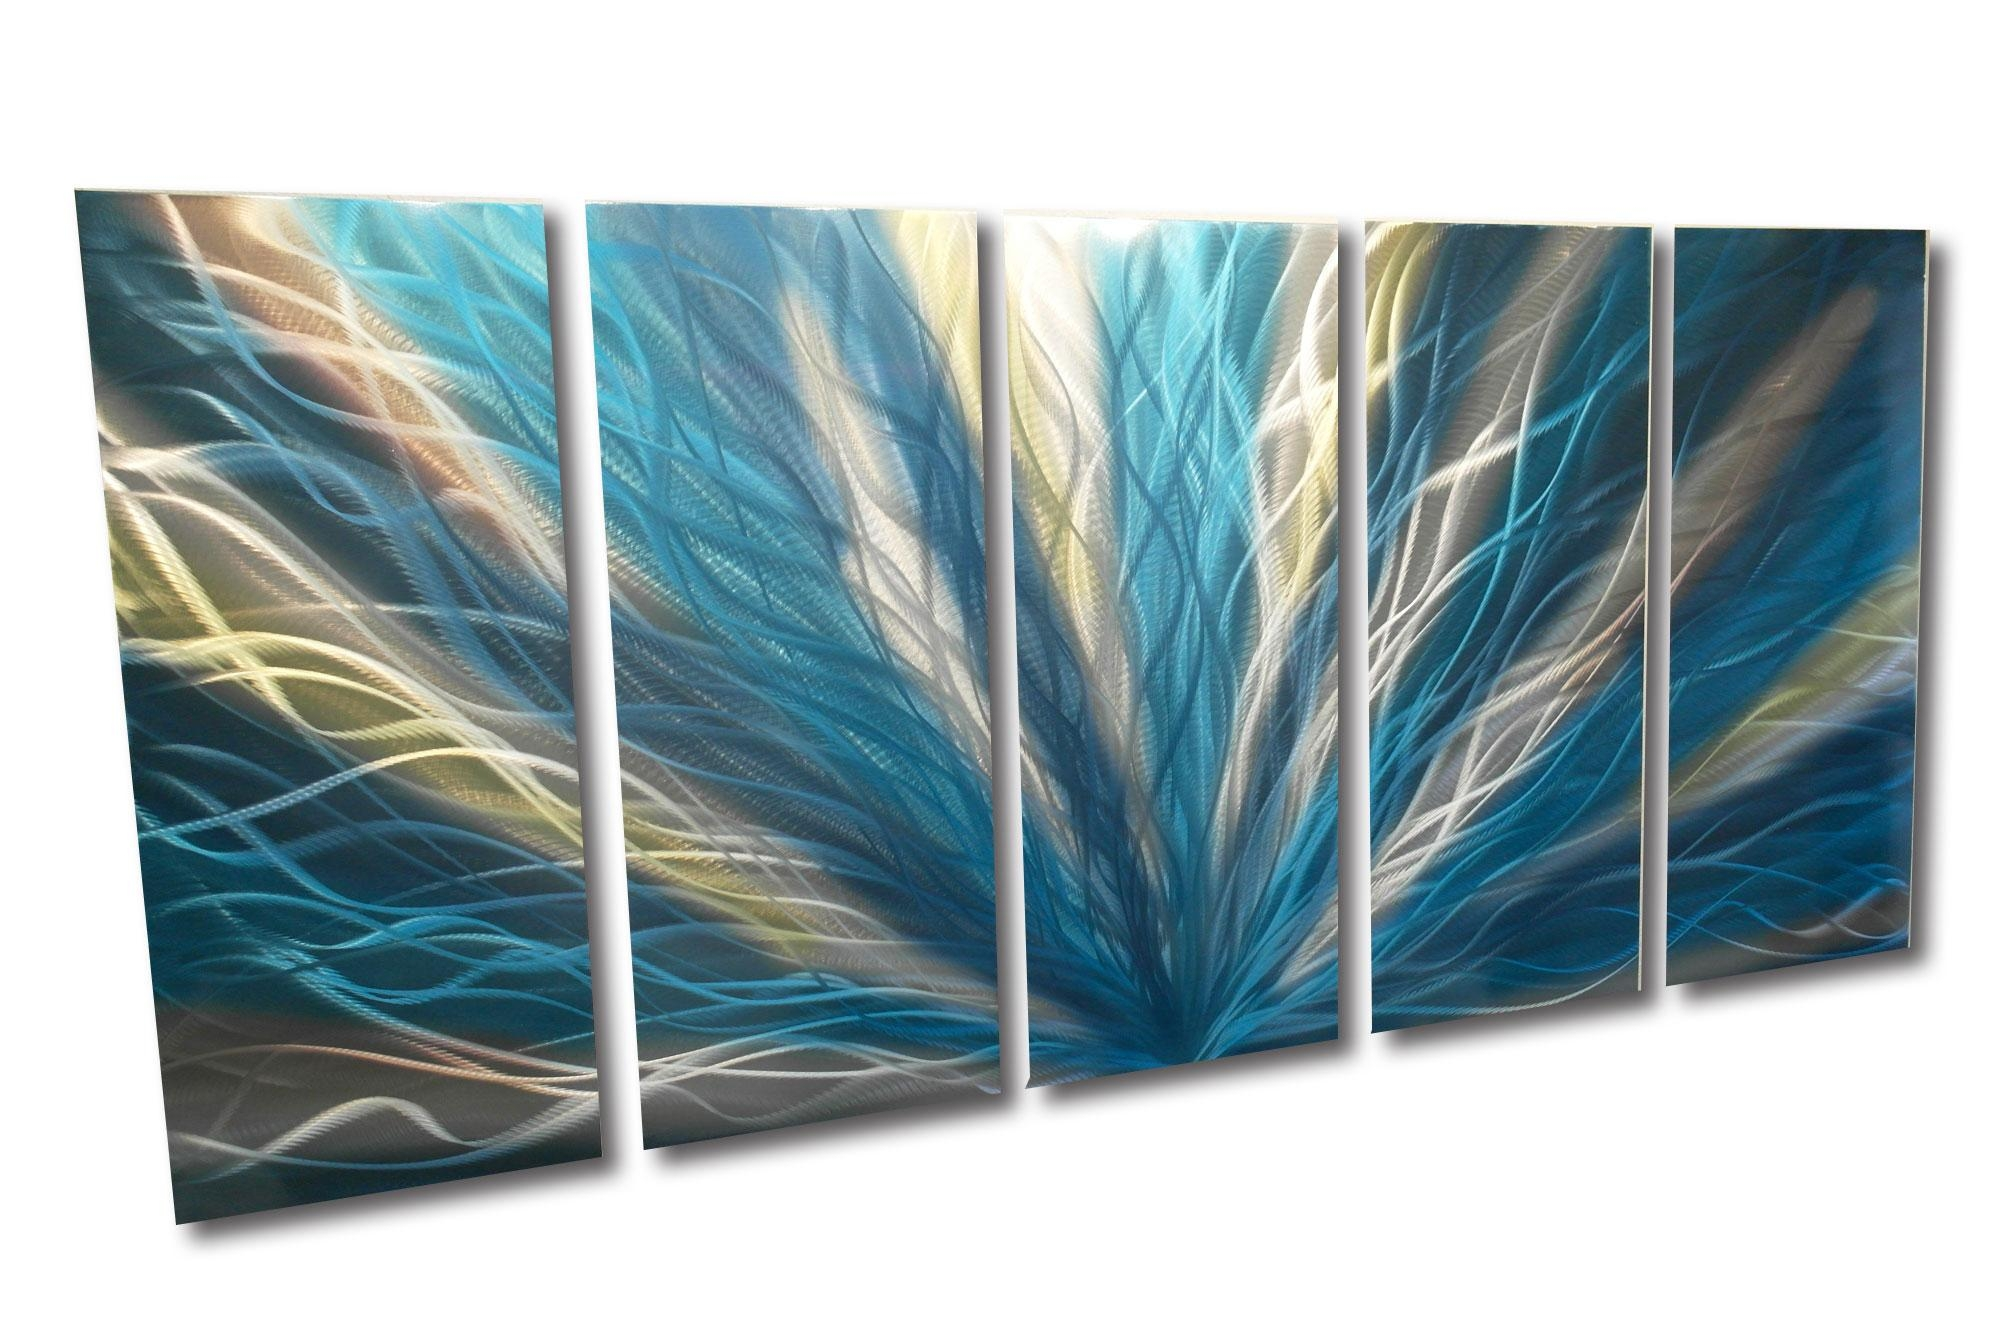 Radiance Teal 36X79 - Metal Wall Art Abstract Sculpture Modern pertaining to Turquoise and Brown Wall Art